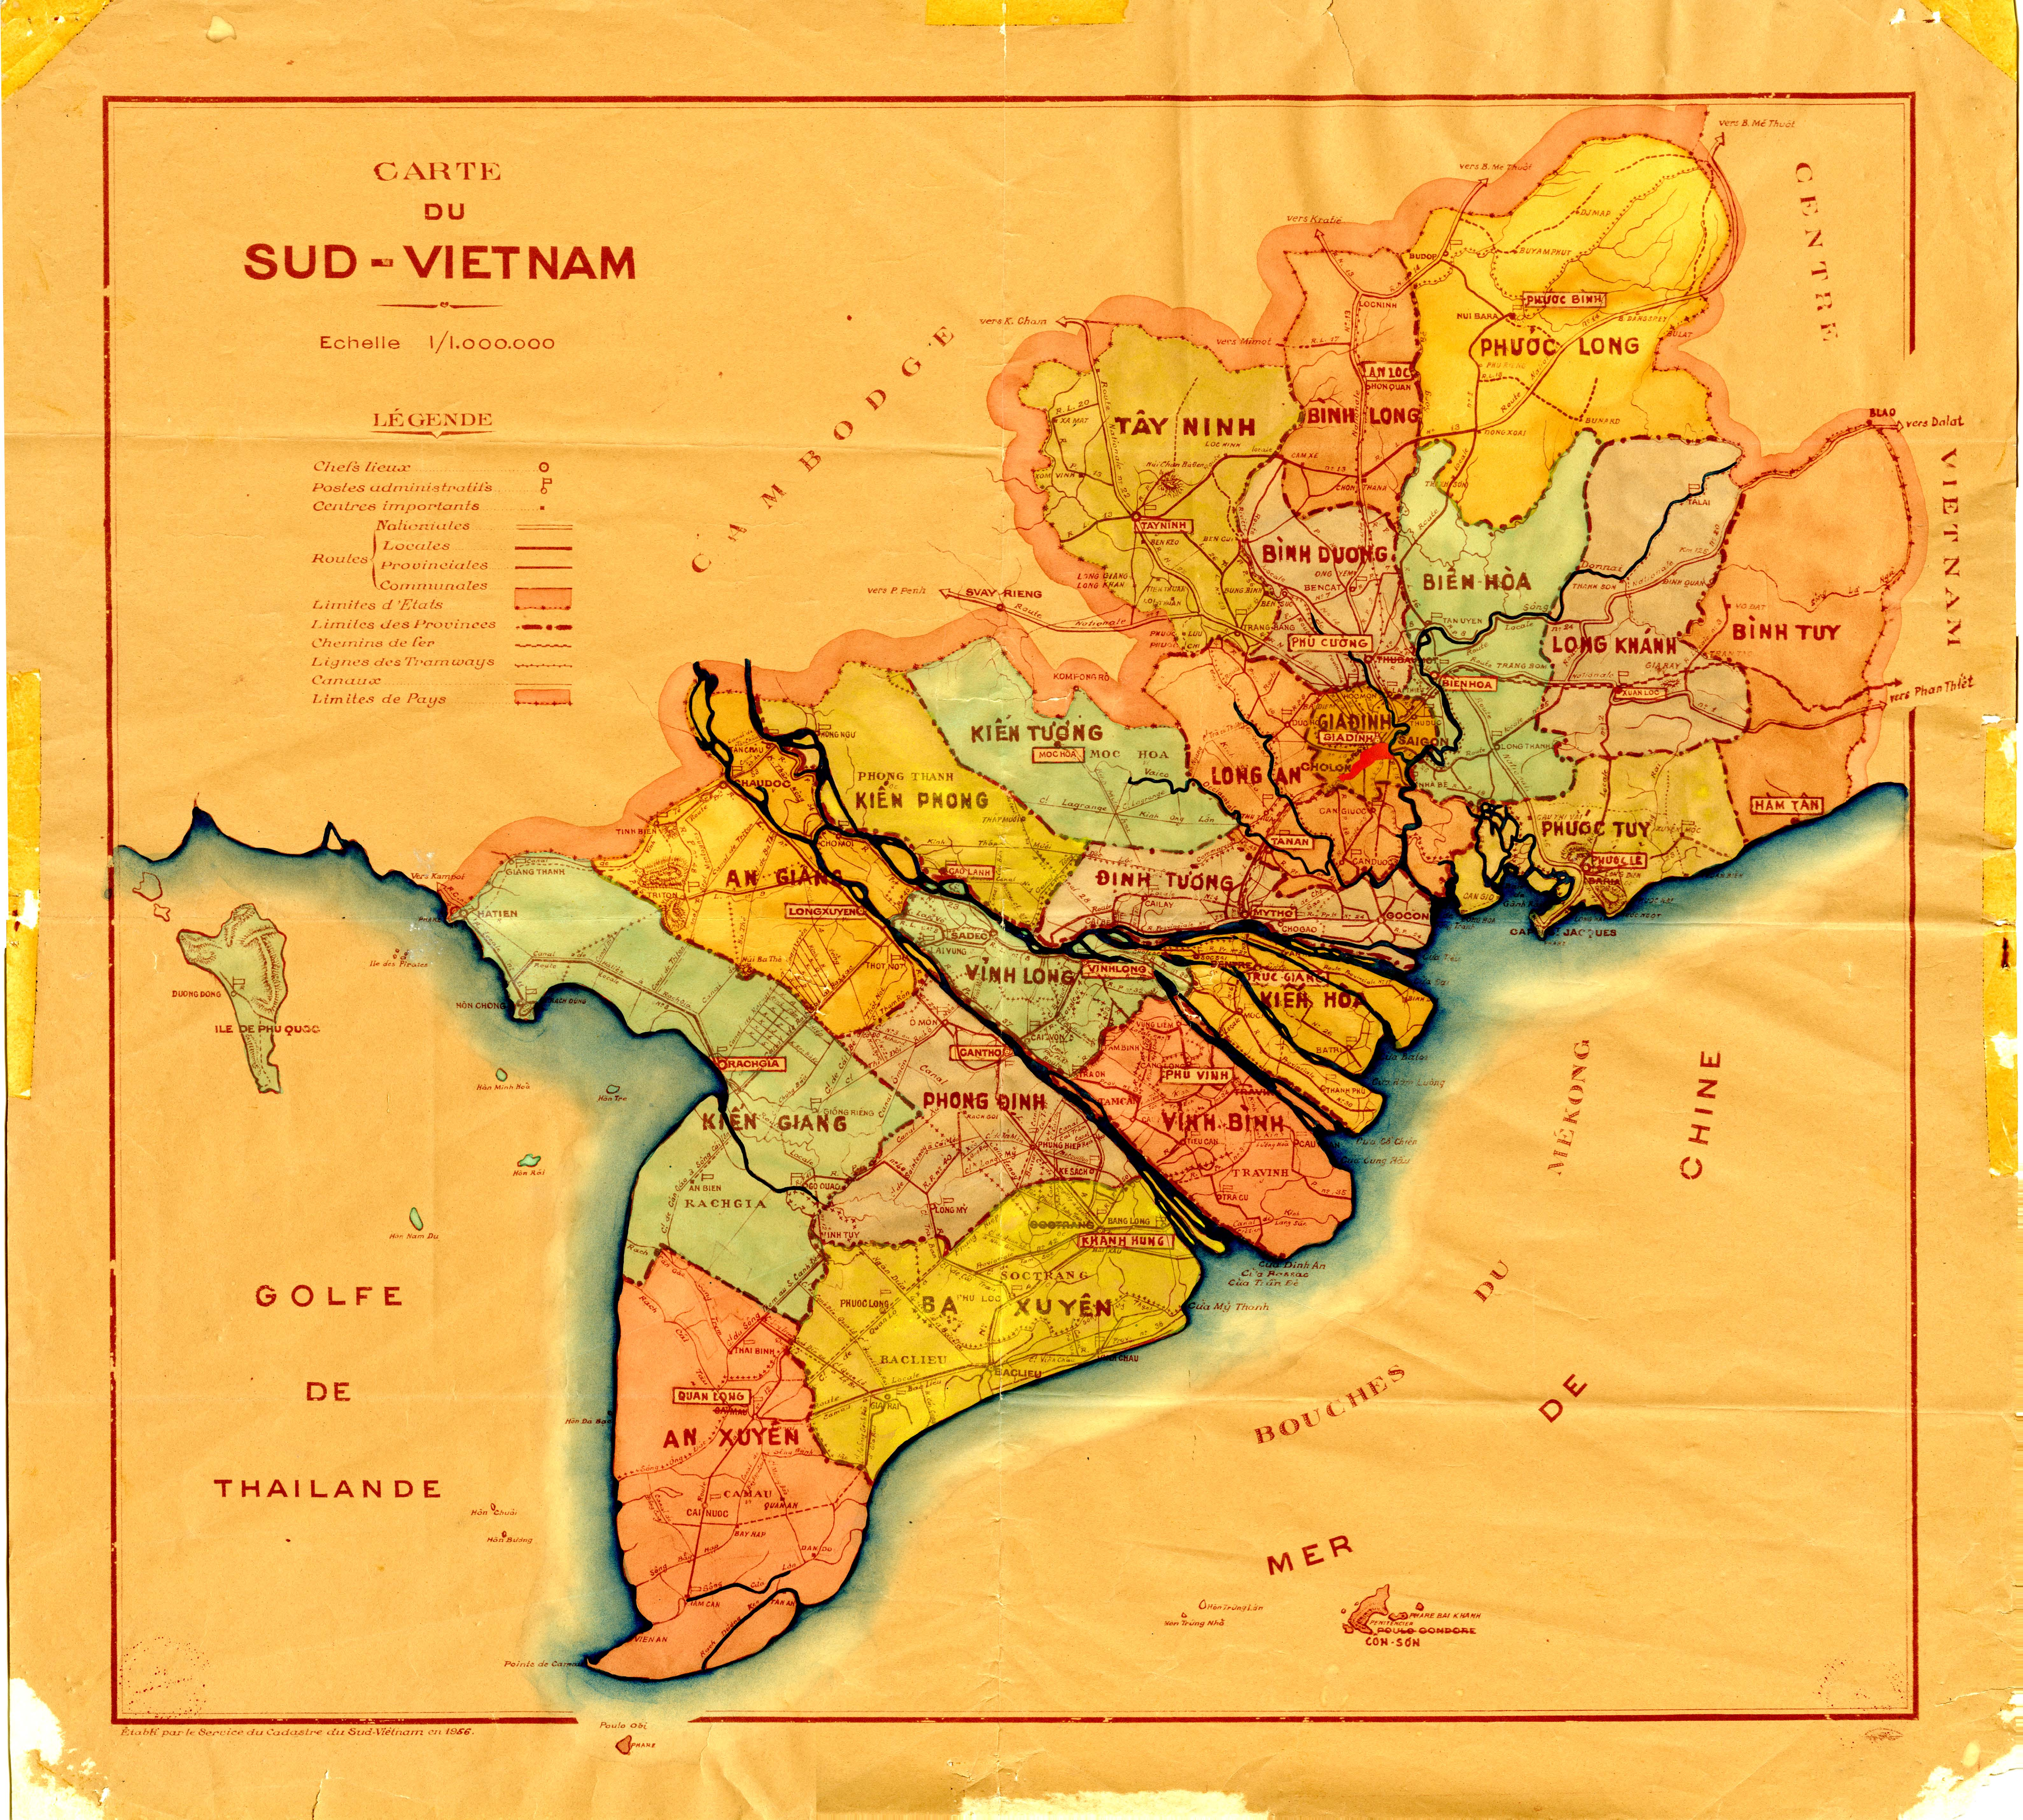 French Map of South Vietnam, 1956